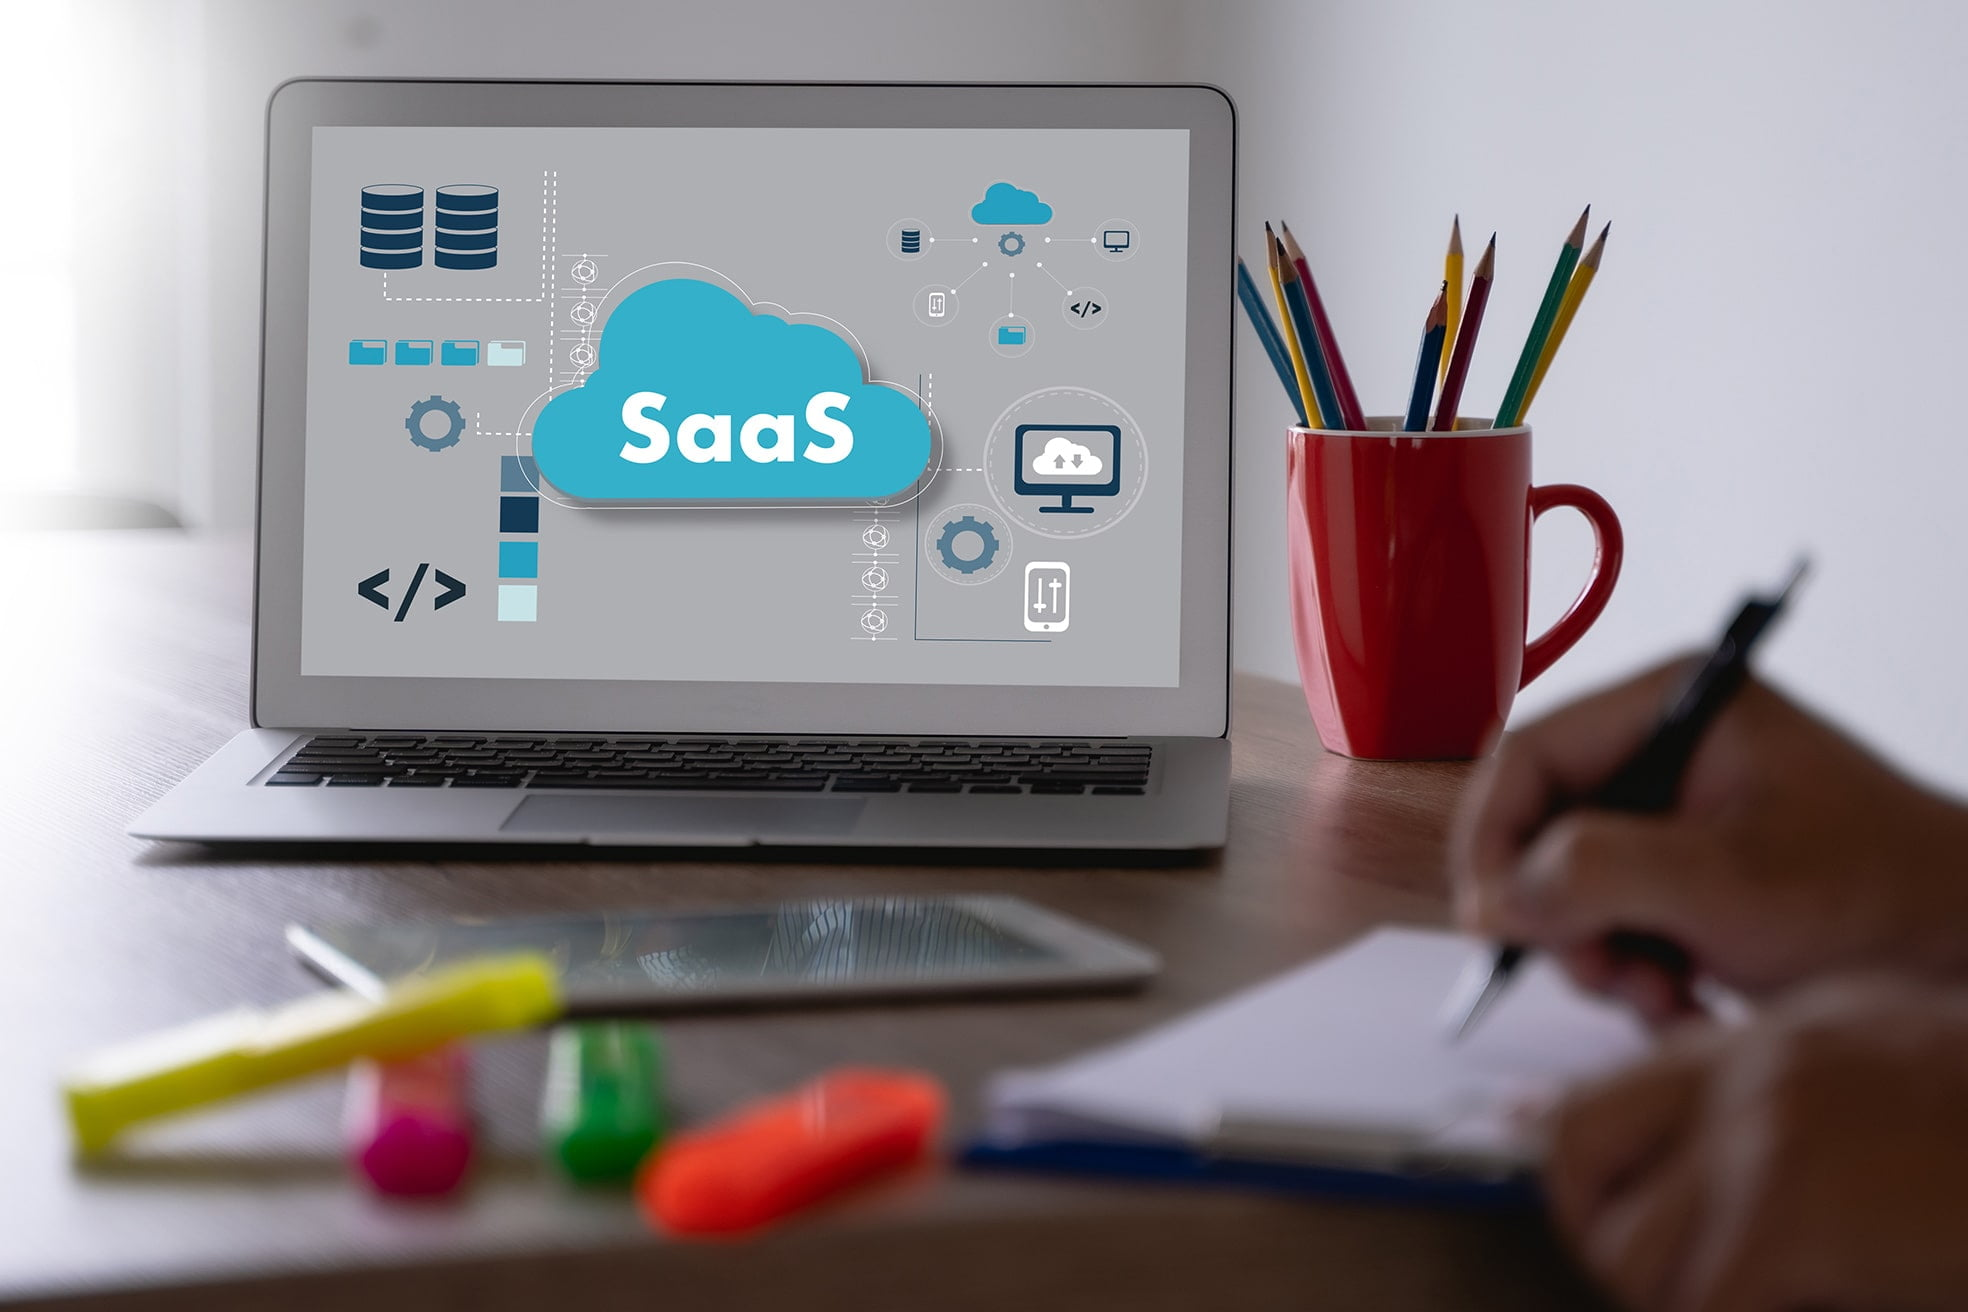 10 SaaS tools to ease your daily business tasks